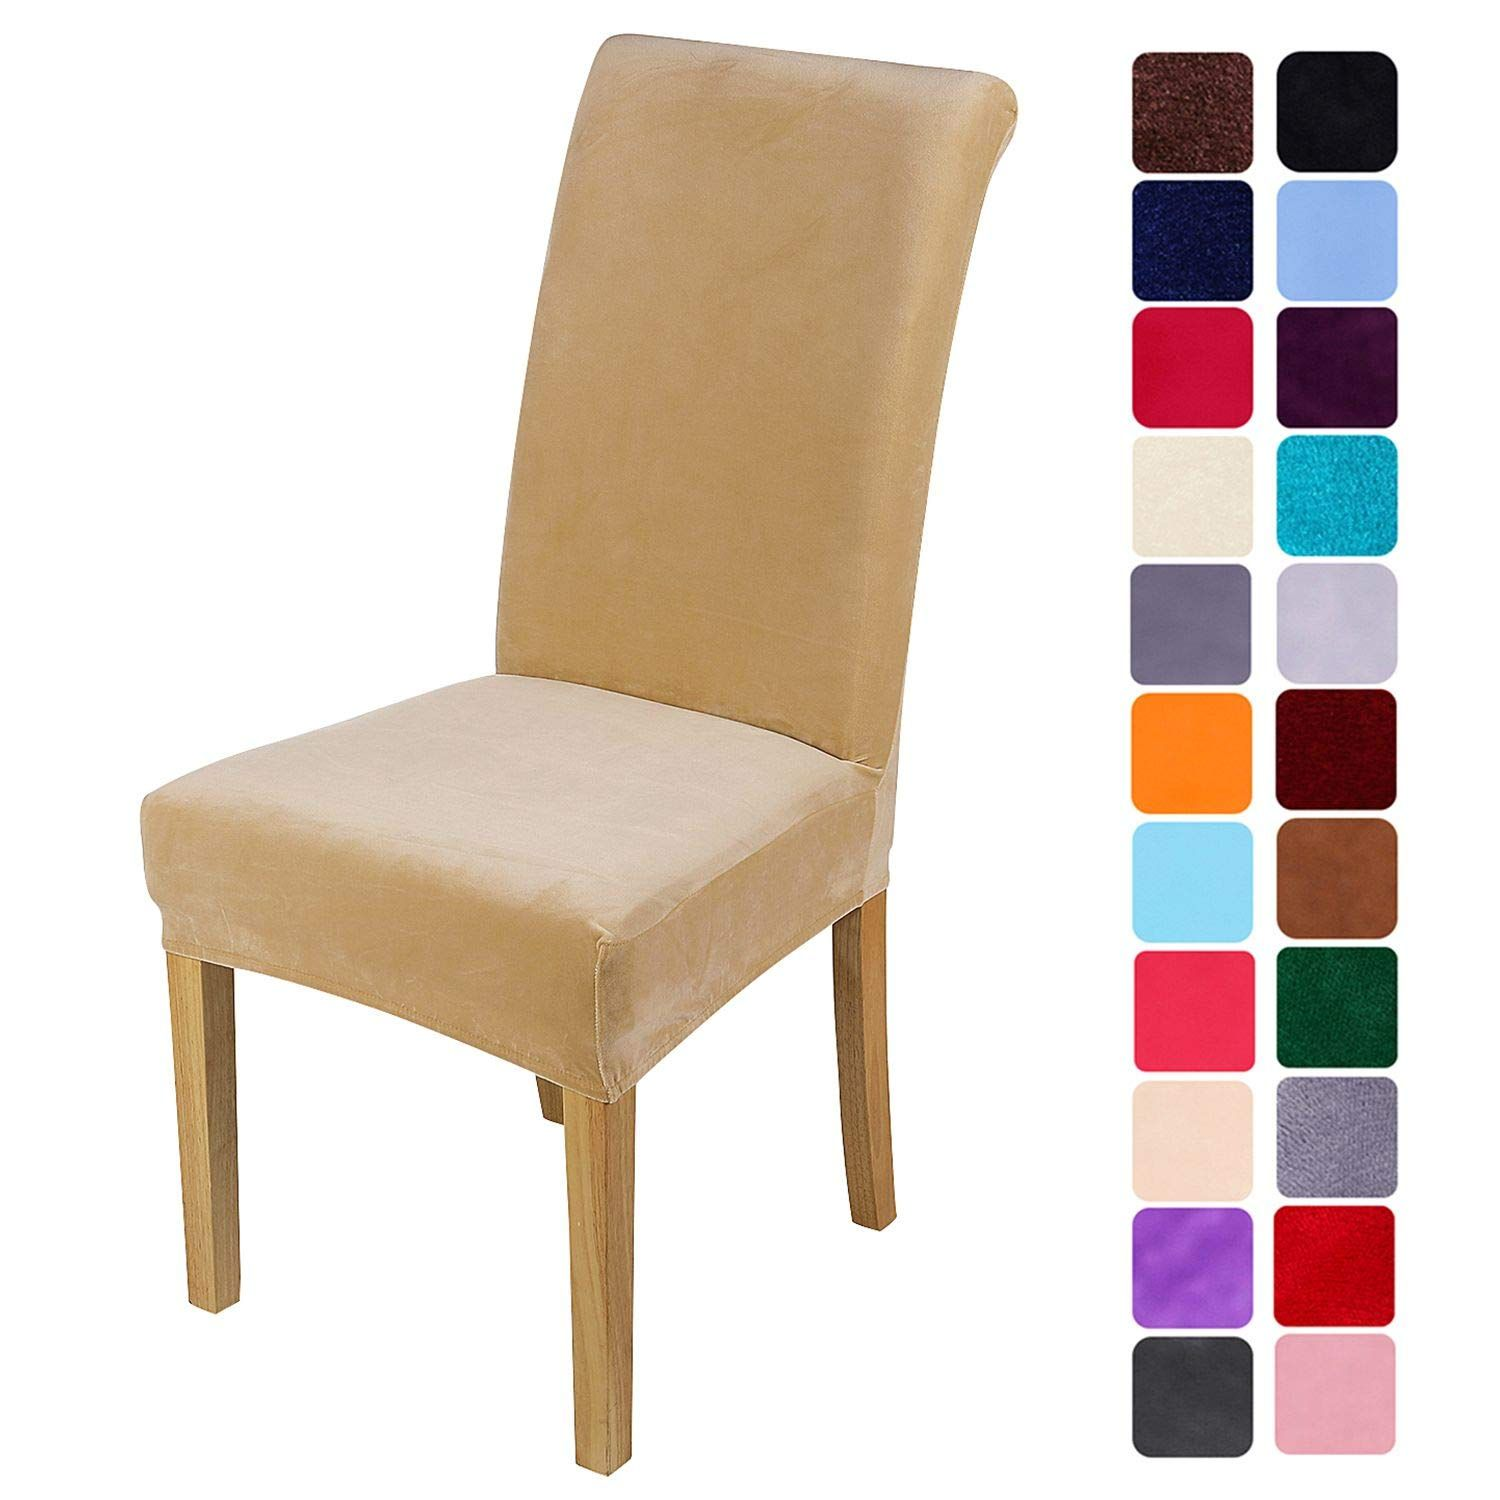 Smiry Velvet Stretch Dining Room Chair Covers Soft Removable Dining Chair Slipcovers Set Dining Room Chair Covers Slipcovers For Chairs Dining Chair Slipcovers